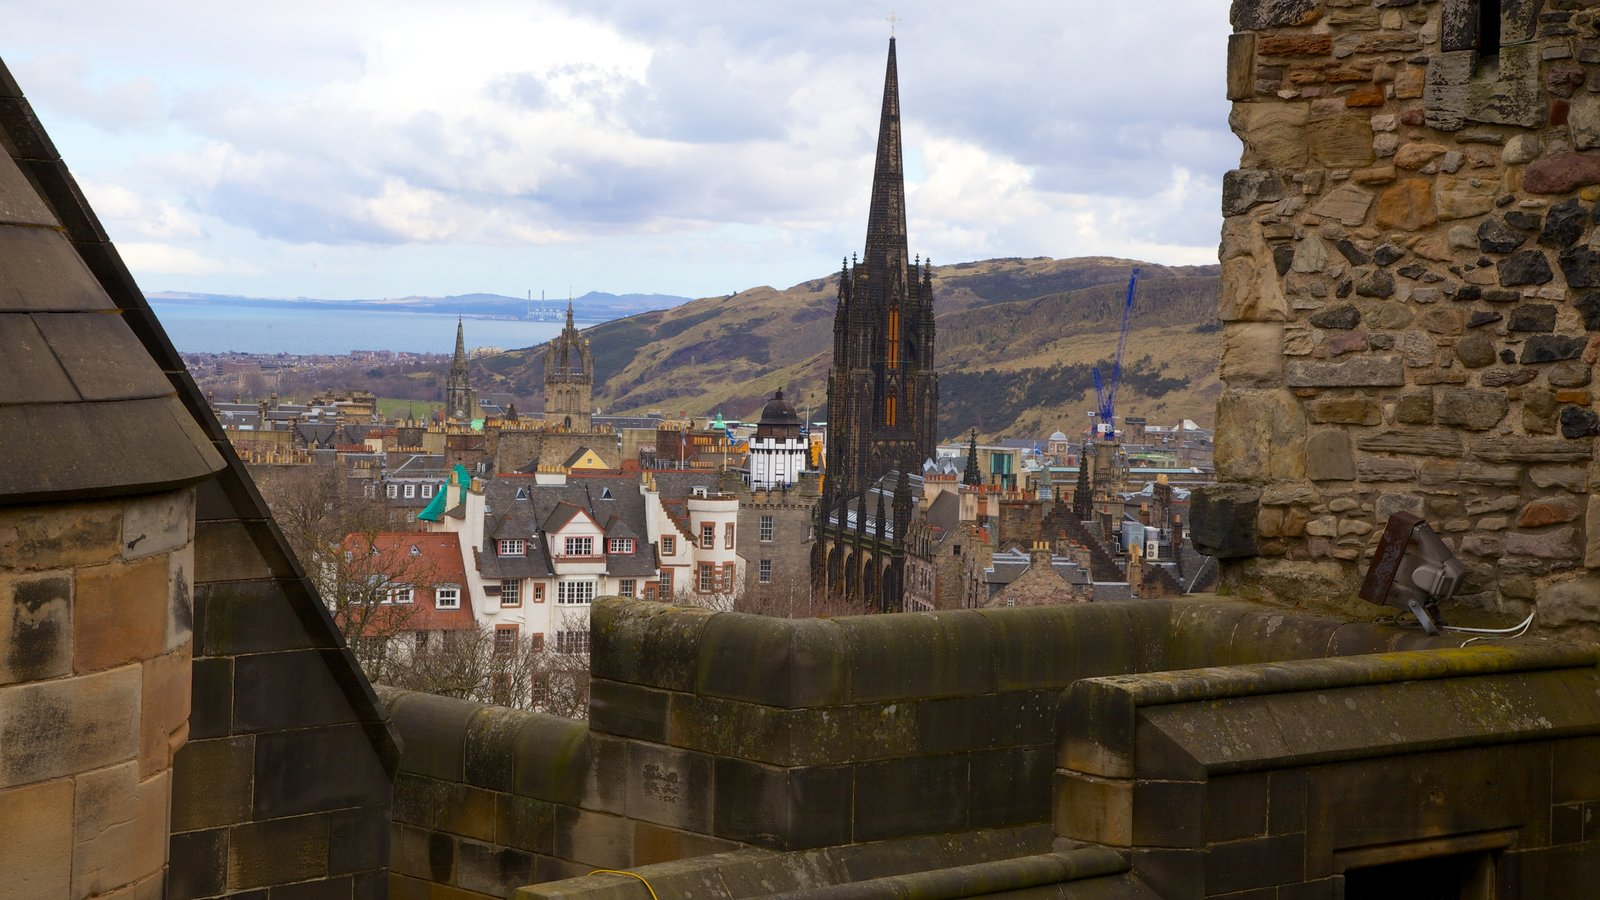 Edinburgh Castle featuring heritage architecture, chateau or palace and a small town or village